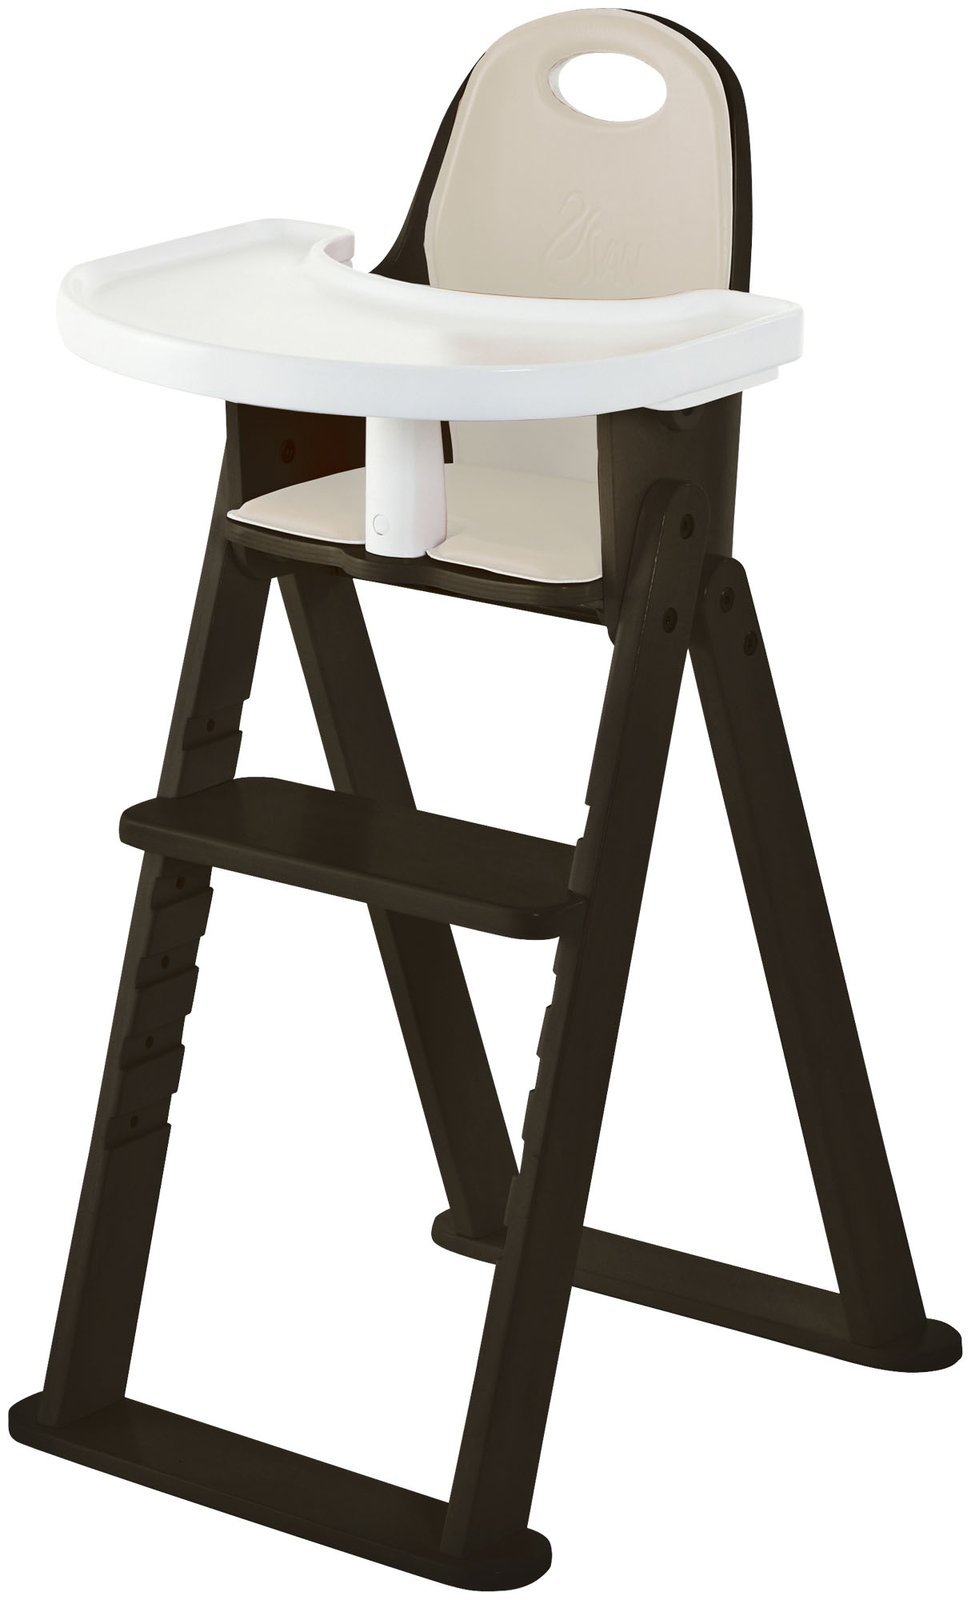 High Chair – Award Winning Svan Baby to Booster Bentwood Folding Chair with Removable Cushion and Harness (6 mos – 5 yrs) (Espresso)